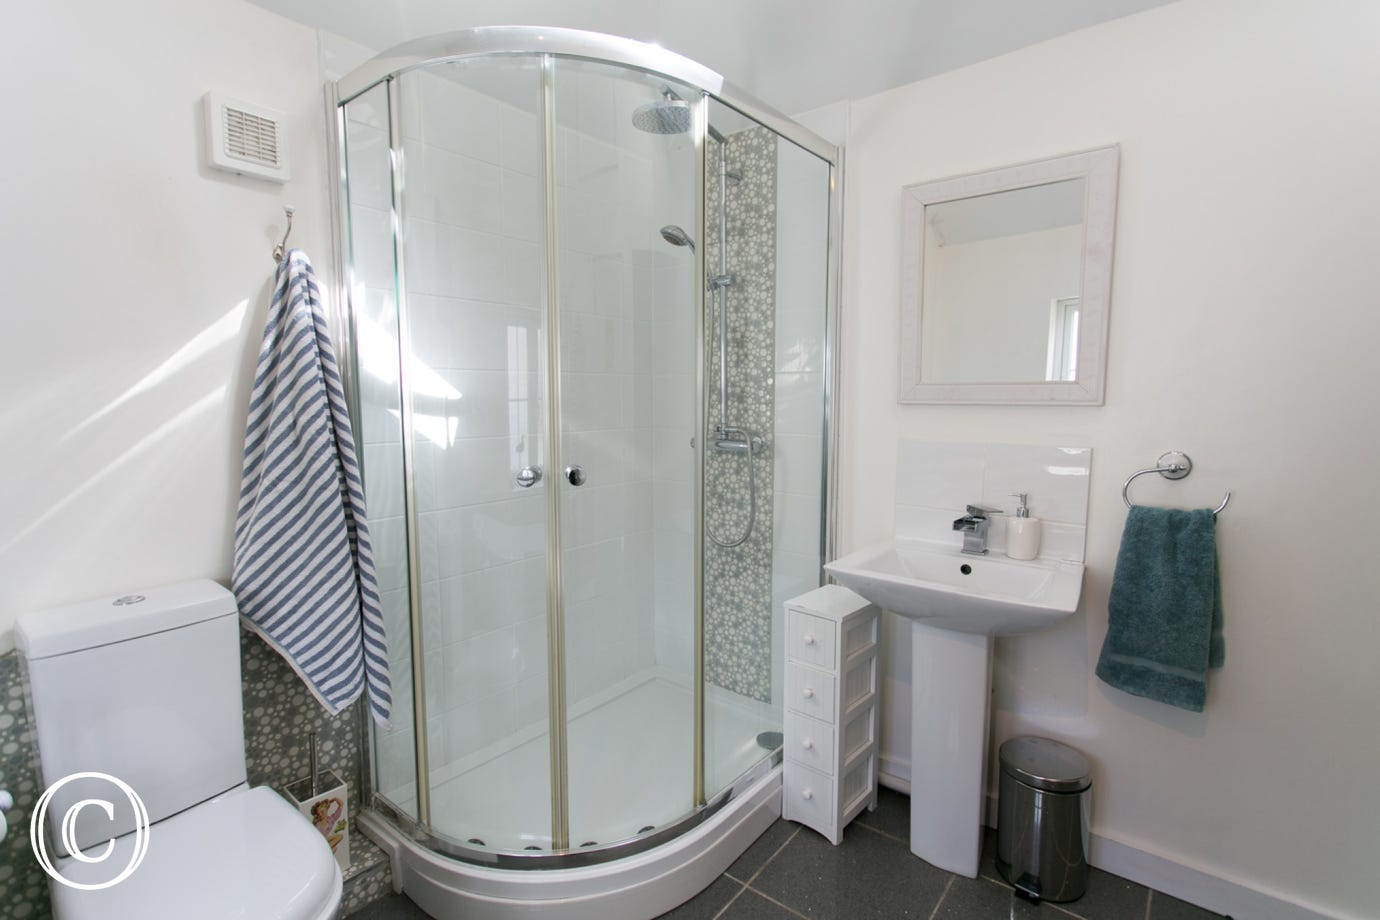 Shower cubicle in the Samphire Cottage bathroom